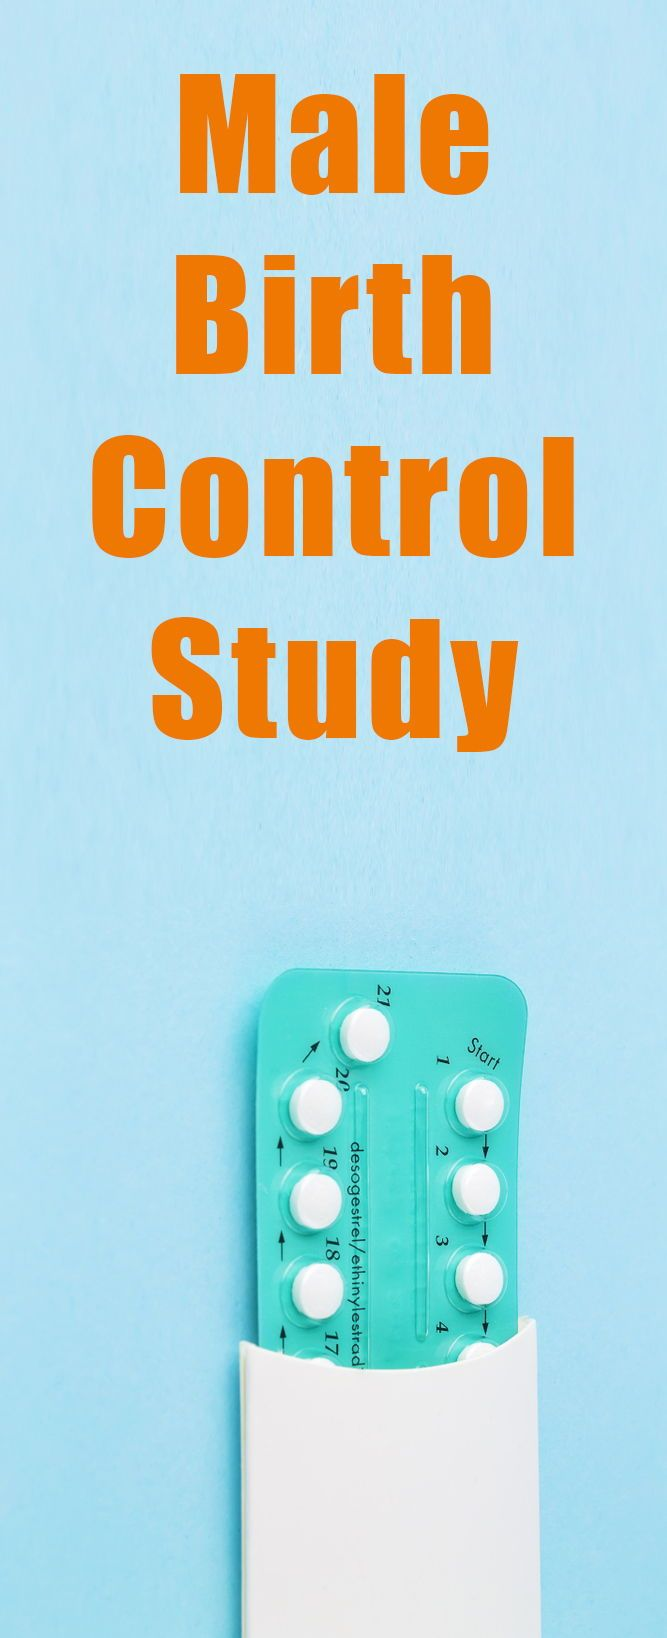 Male Birth Control What To Know Before Going On Birth Control Pill Gifts For New Dads Breastfeeding Support Mom Advice